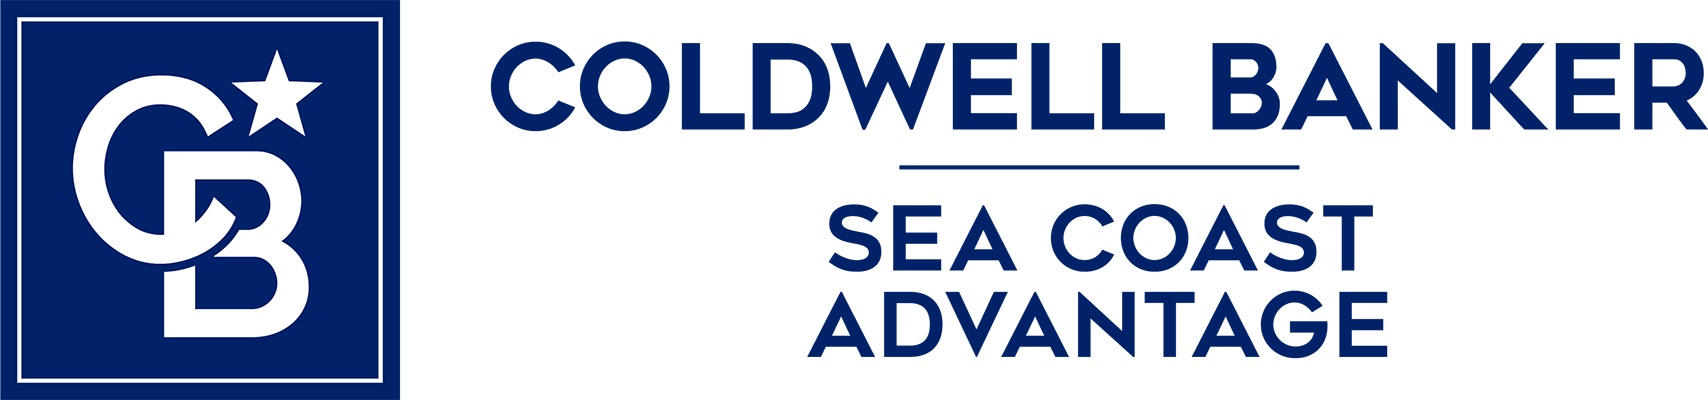 Tom Saffioti - Coldwell Banker Sea Coast Advantage Realty